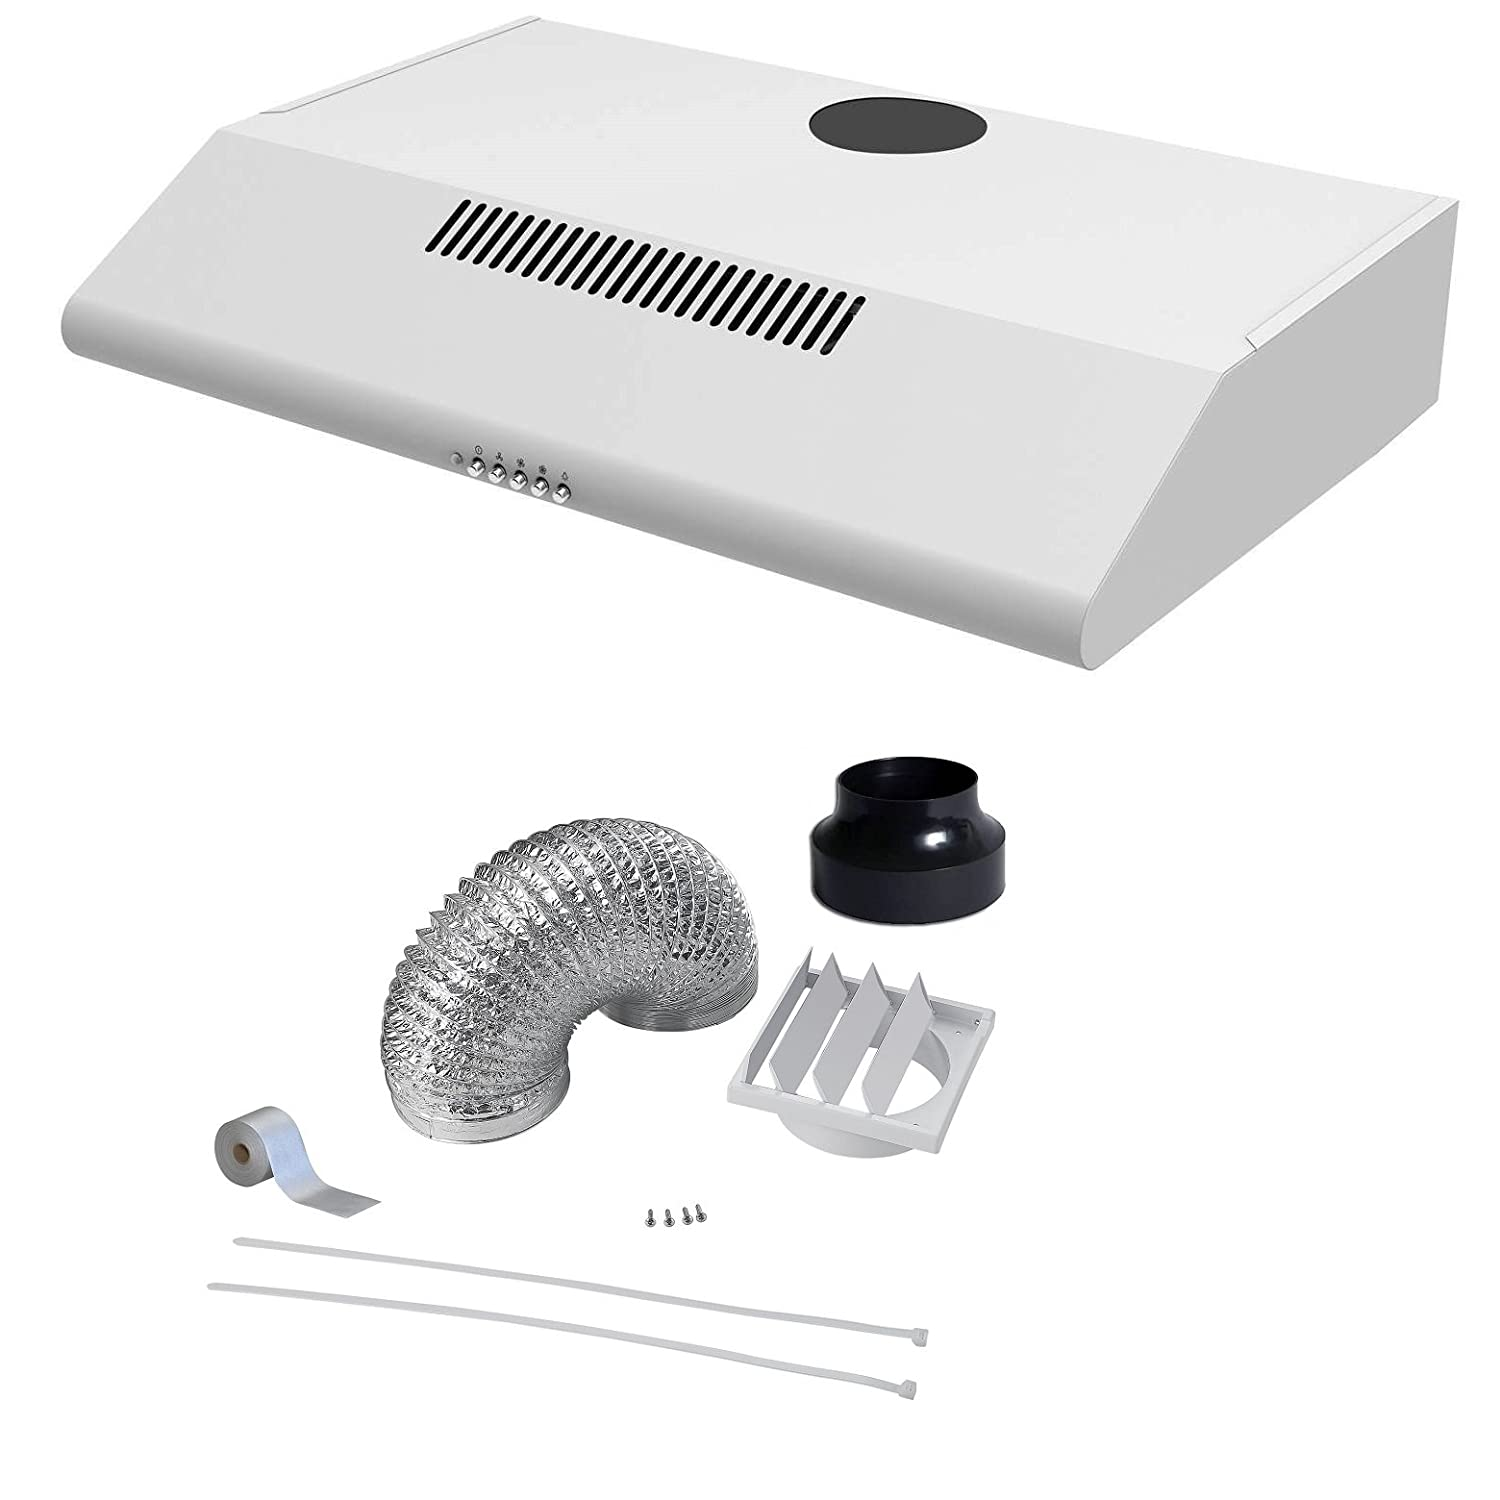 Cookology STAND600WH 60cm White Visor Cooker Hood Extractor Fan & Duct STAND600WH DK1M120